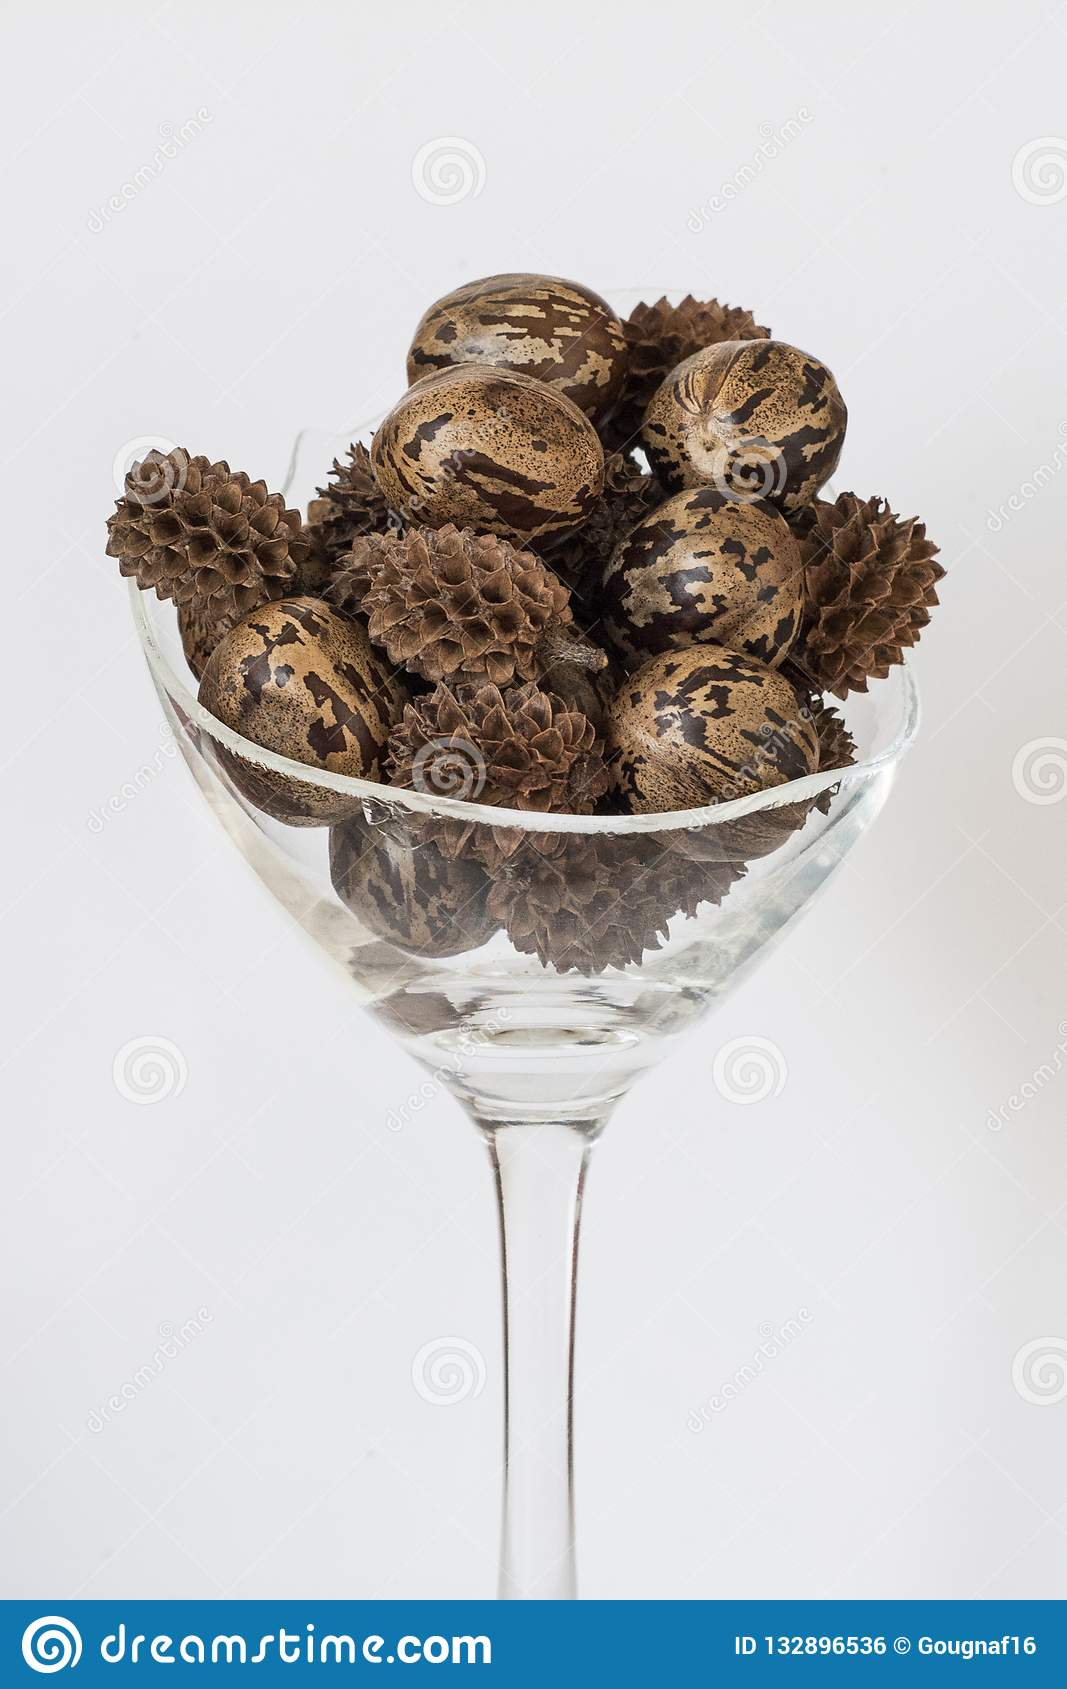 Rubber And Other Tropical Seeds In A Broken Whine Glass On A